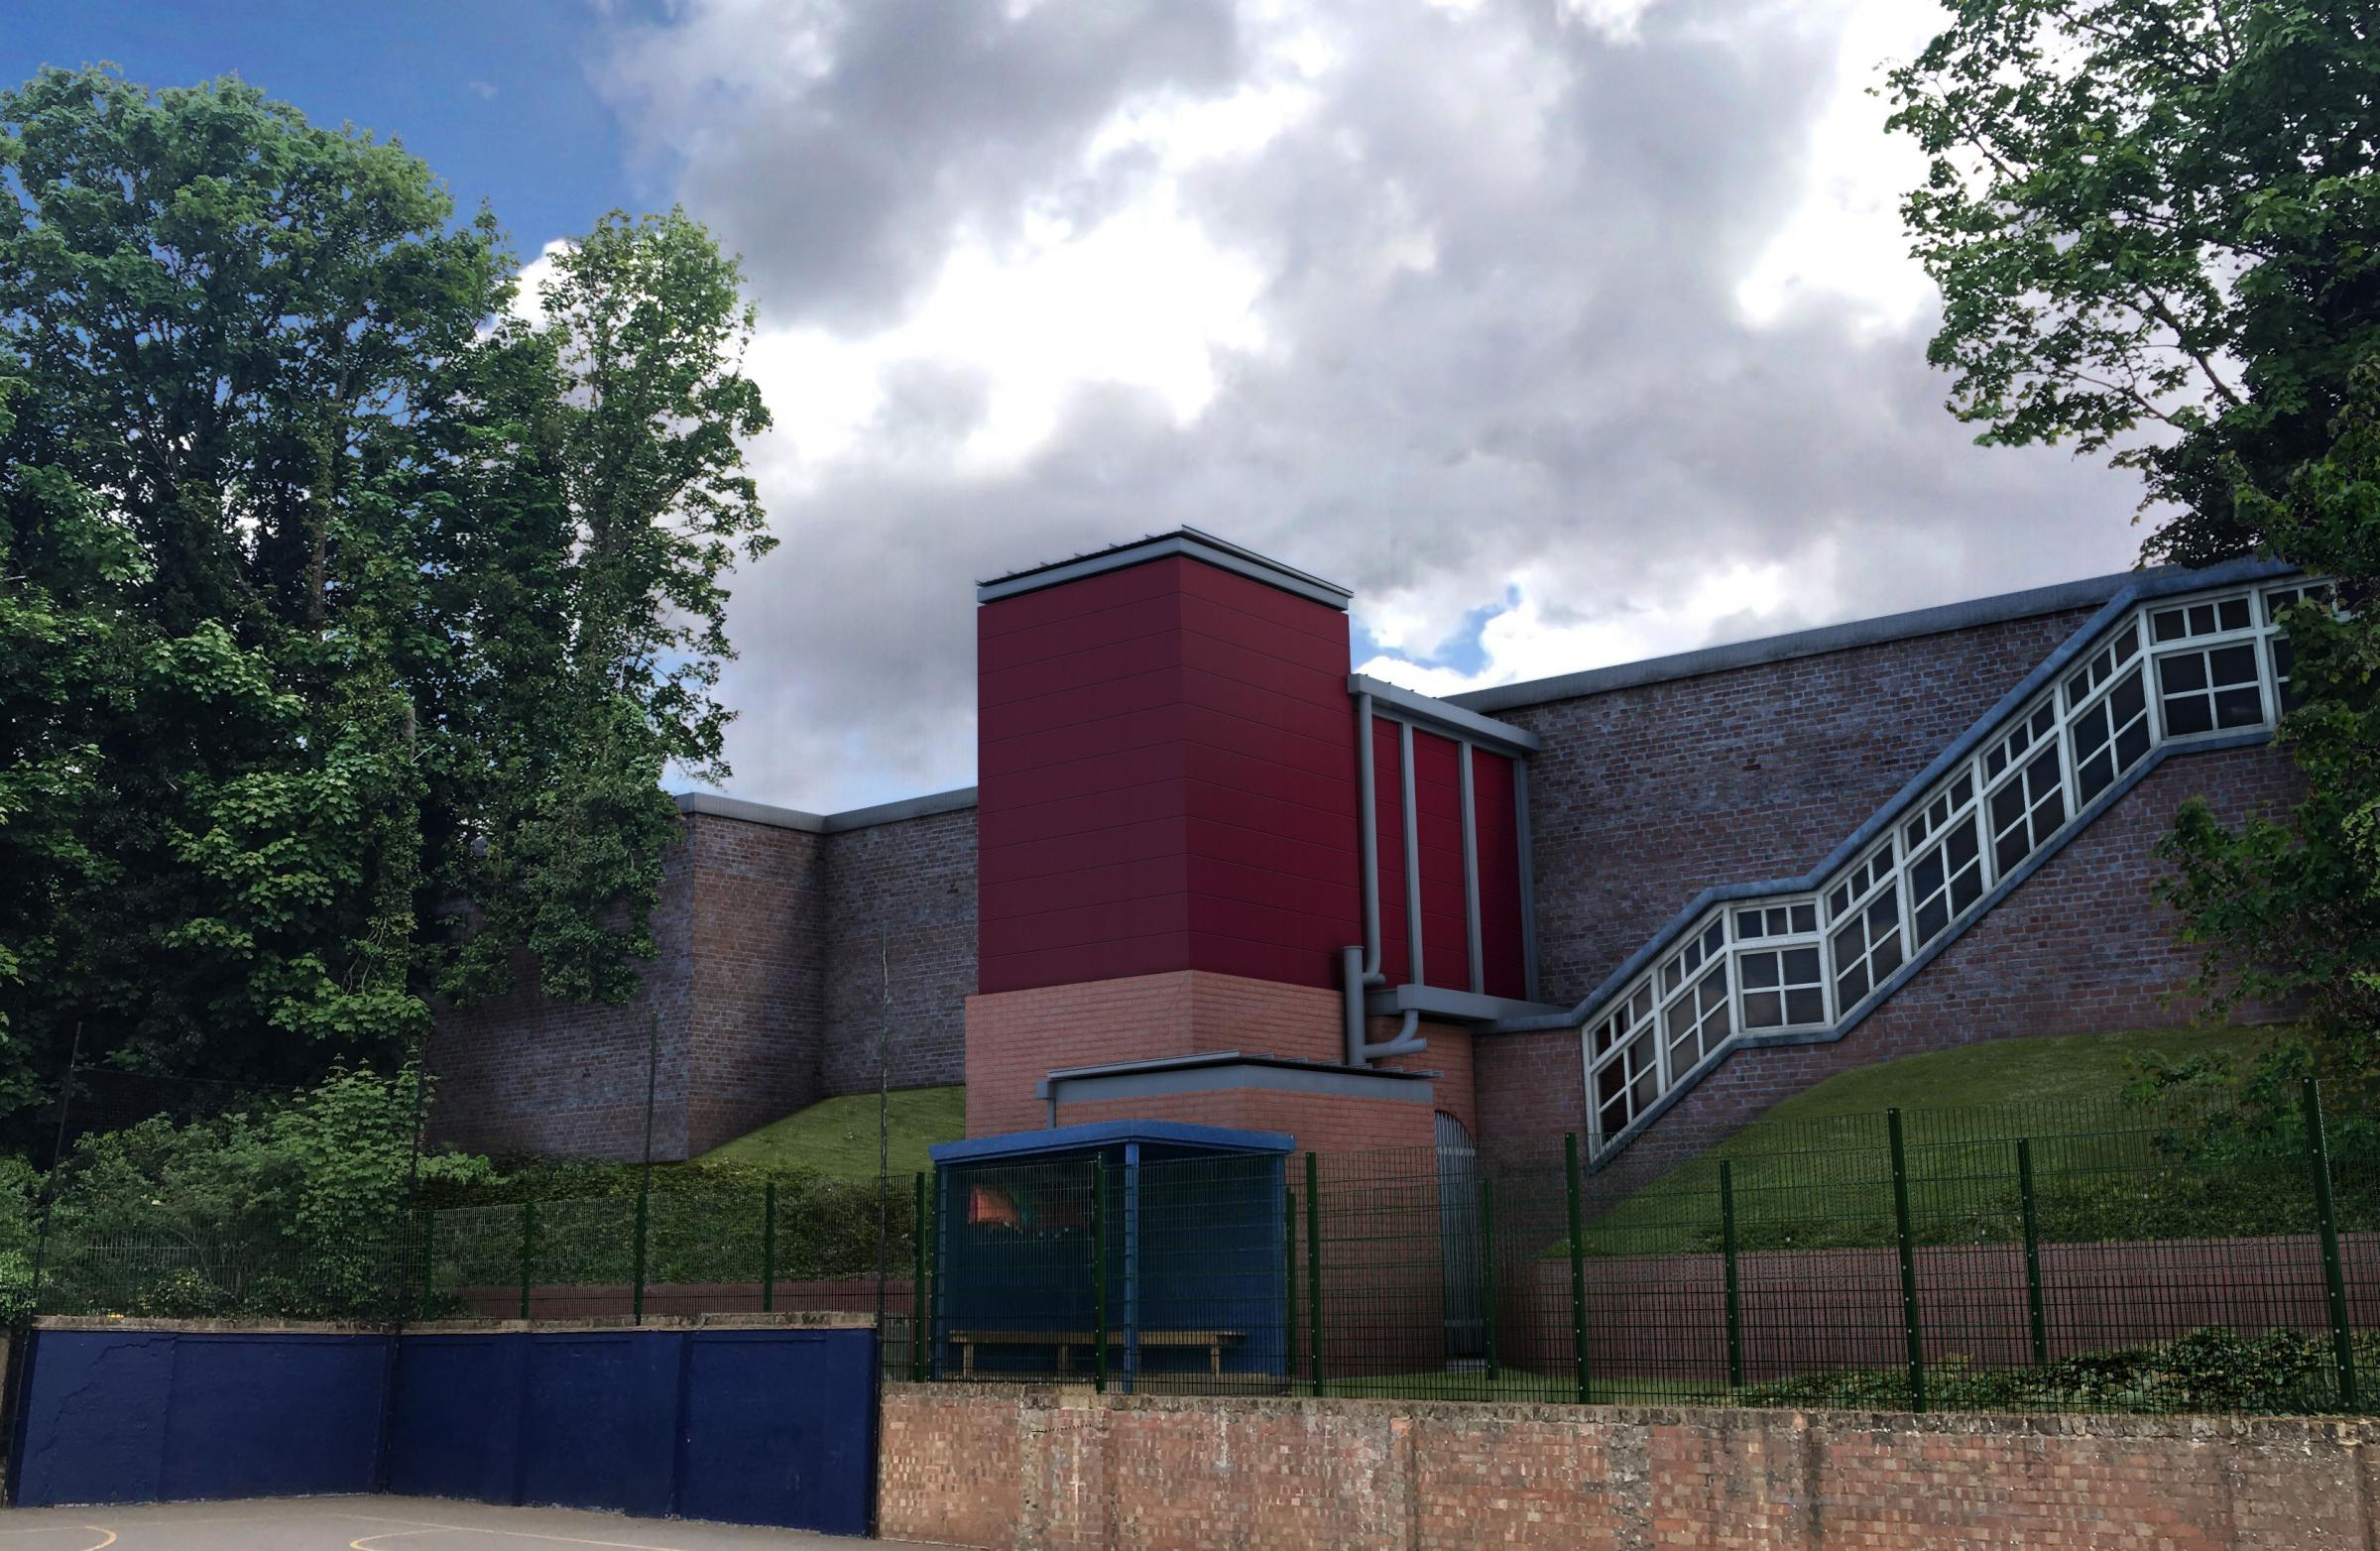 An artist's impression of the new lifts at Carshalton railway station. Photo: Network Rail